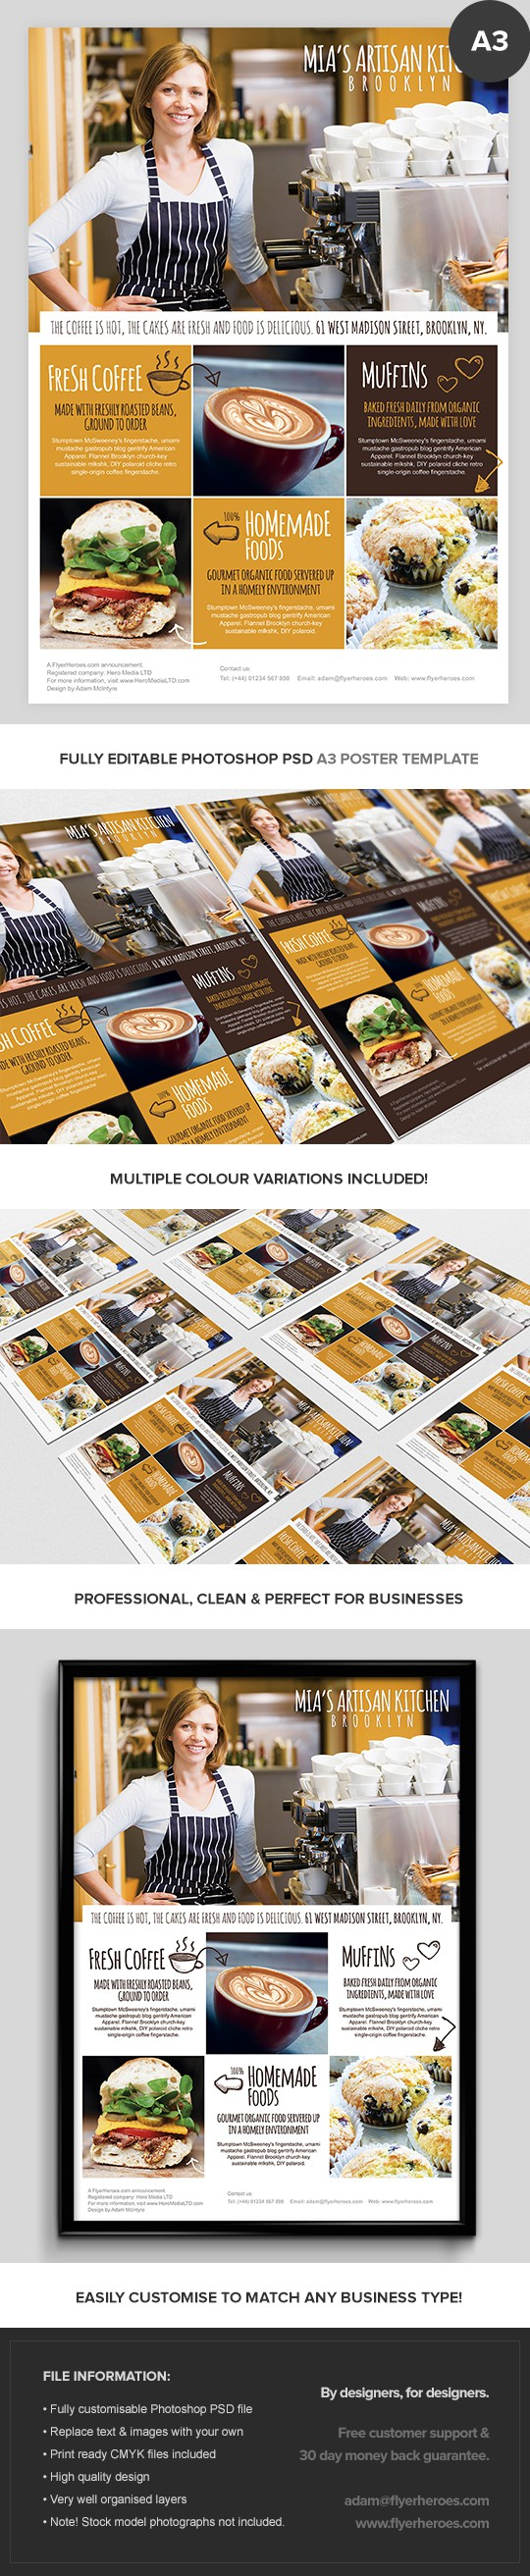 A3 Coffee Shop Poster Template